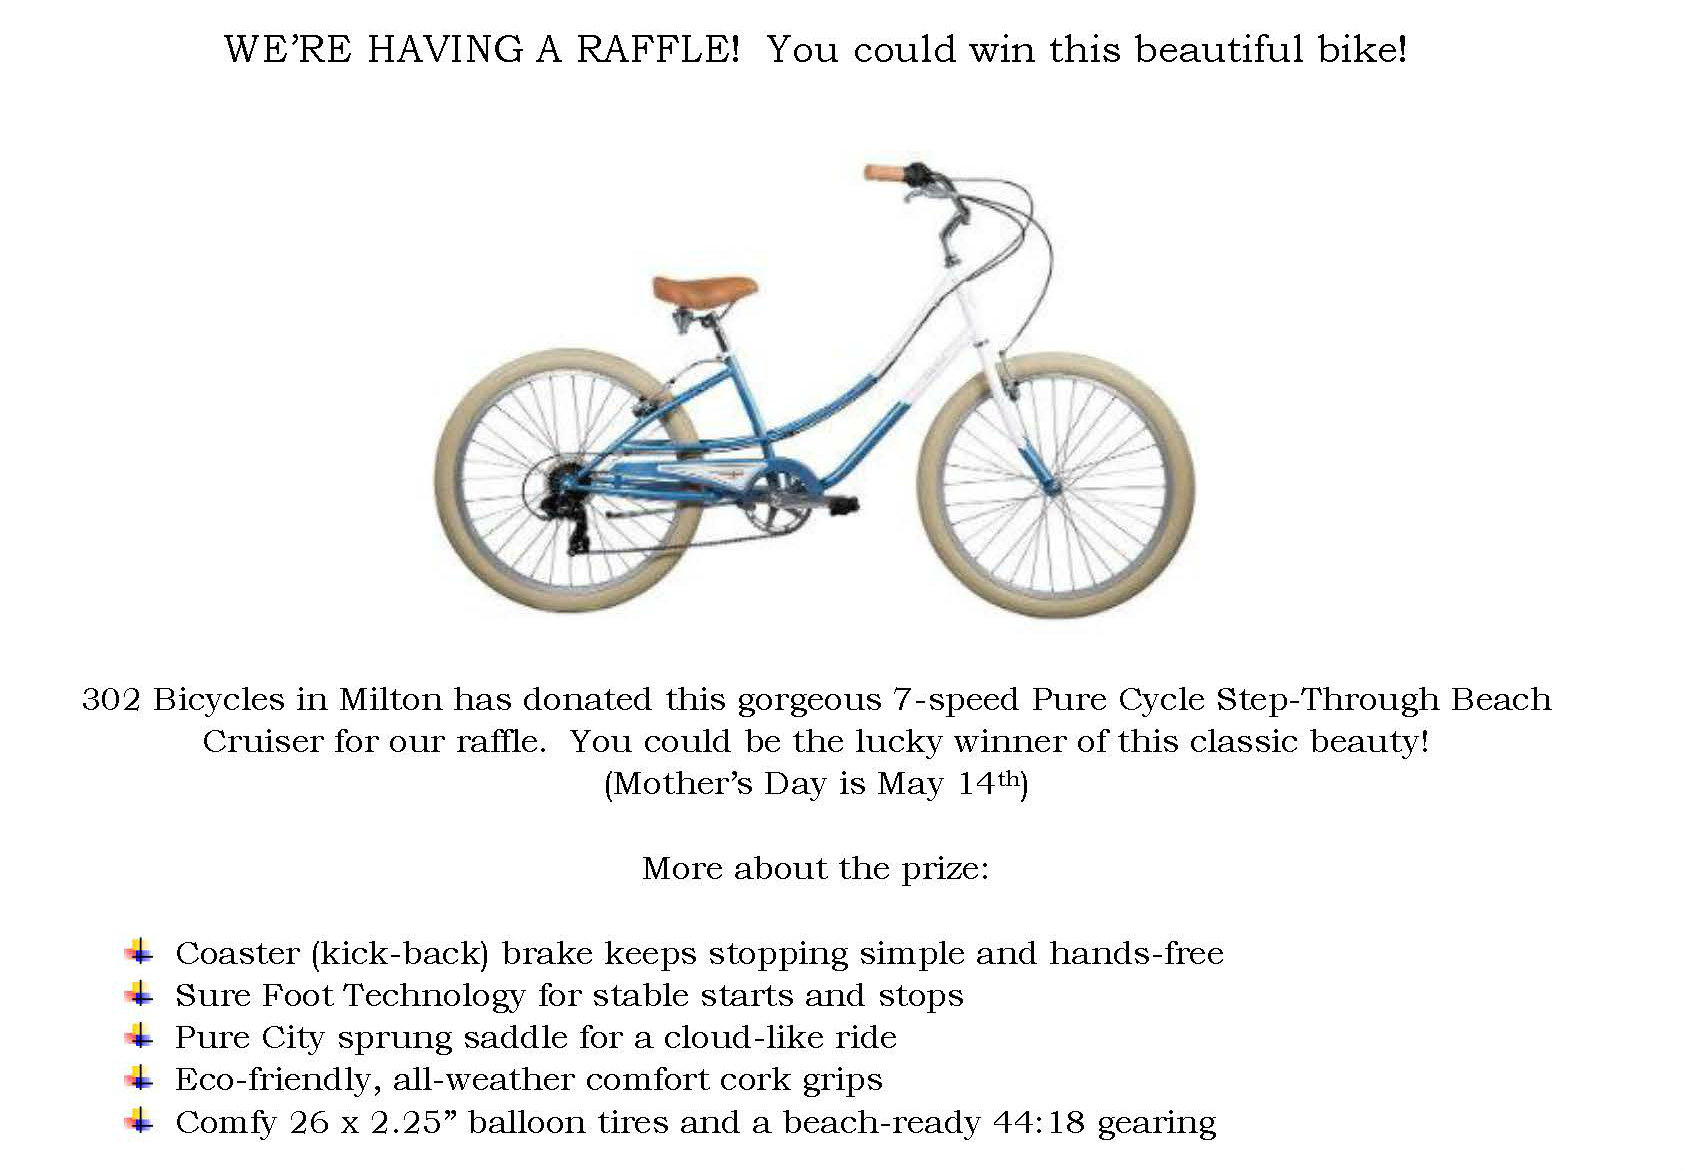 Bike raffle description